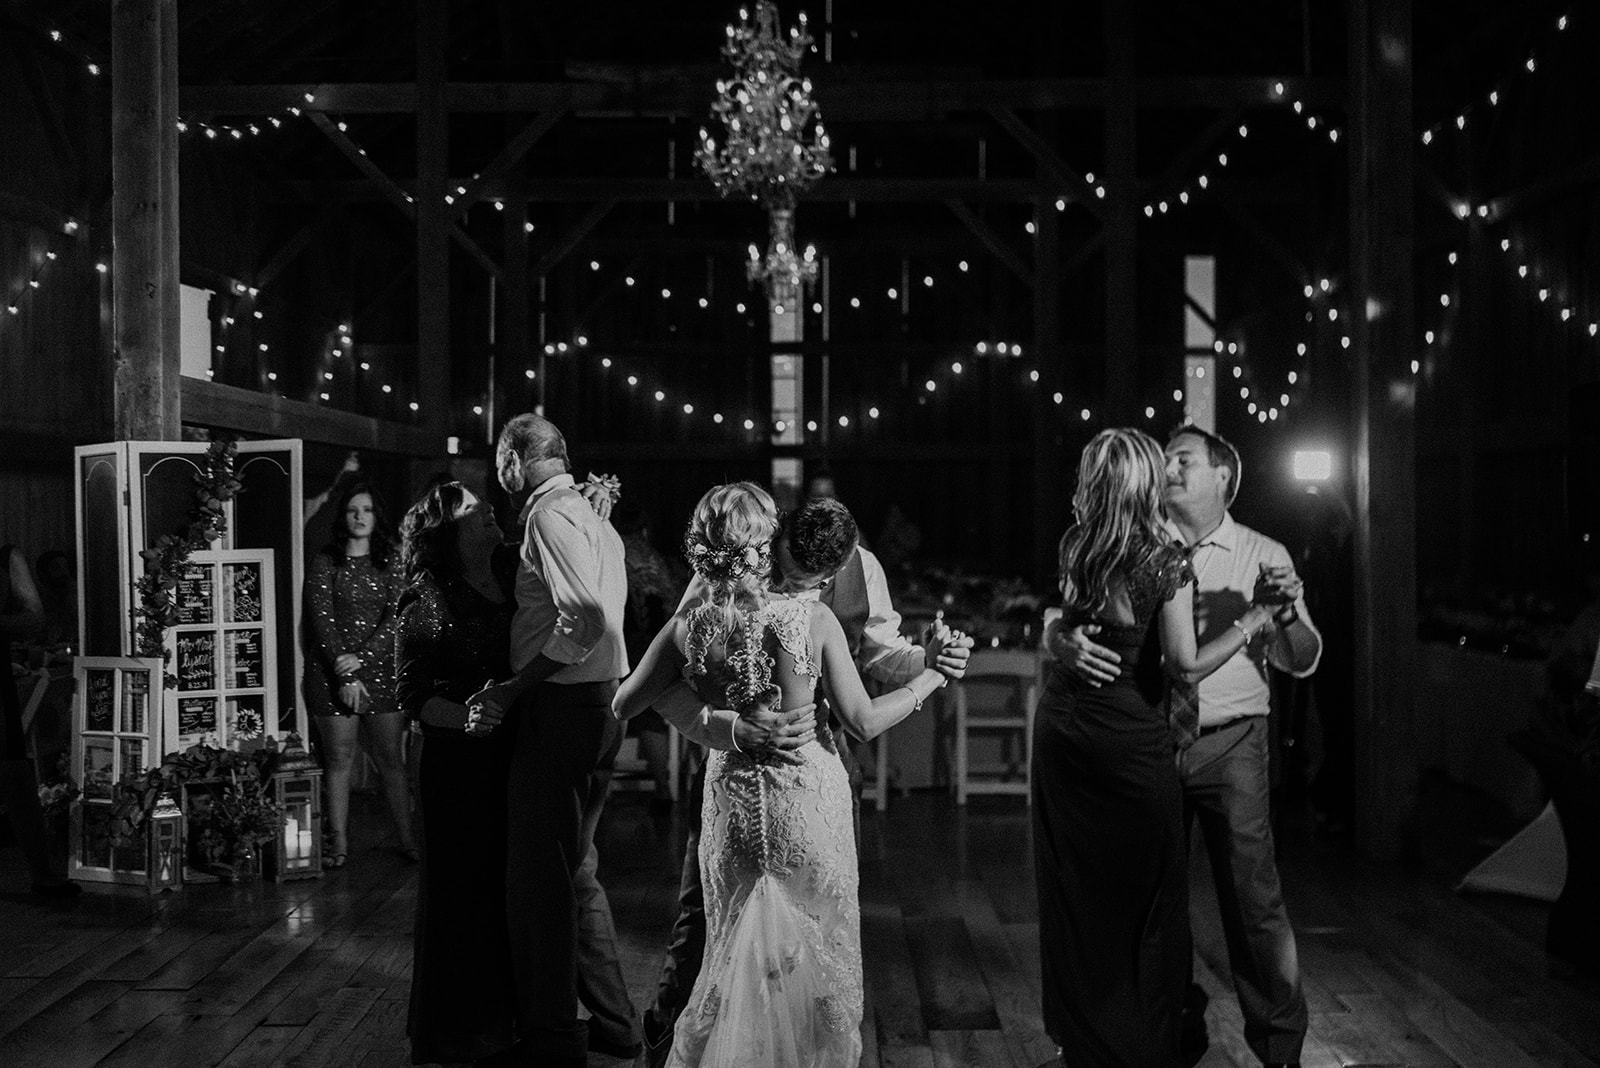 overthevineswisconsinwedding_1320.jpg